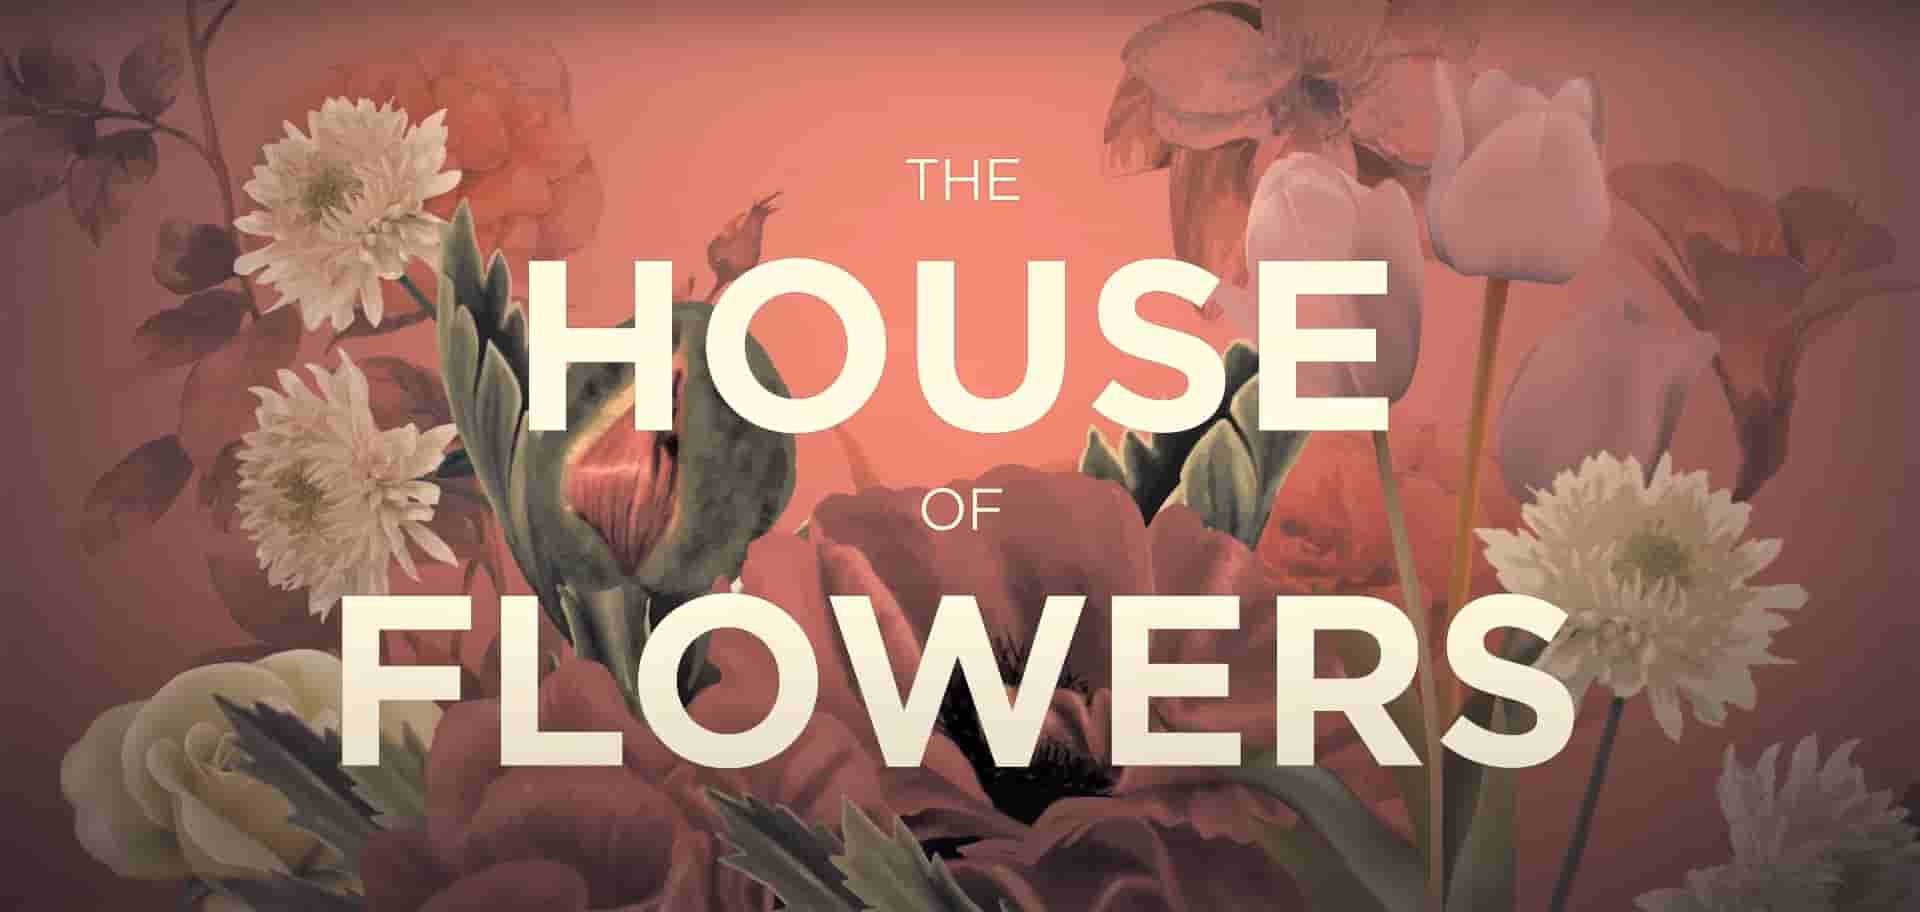 The House of Flowers Season 4 update